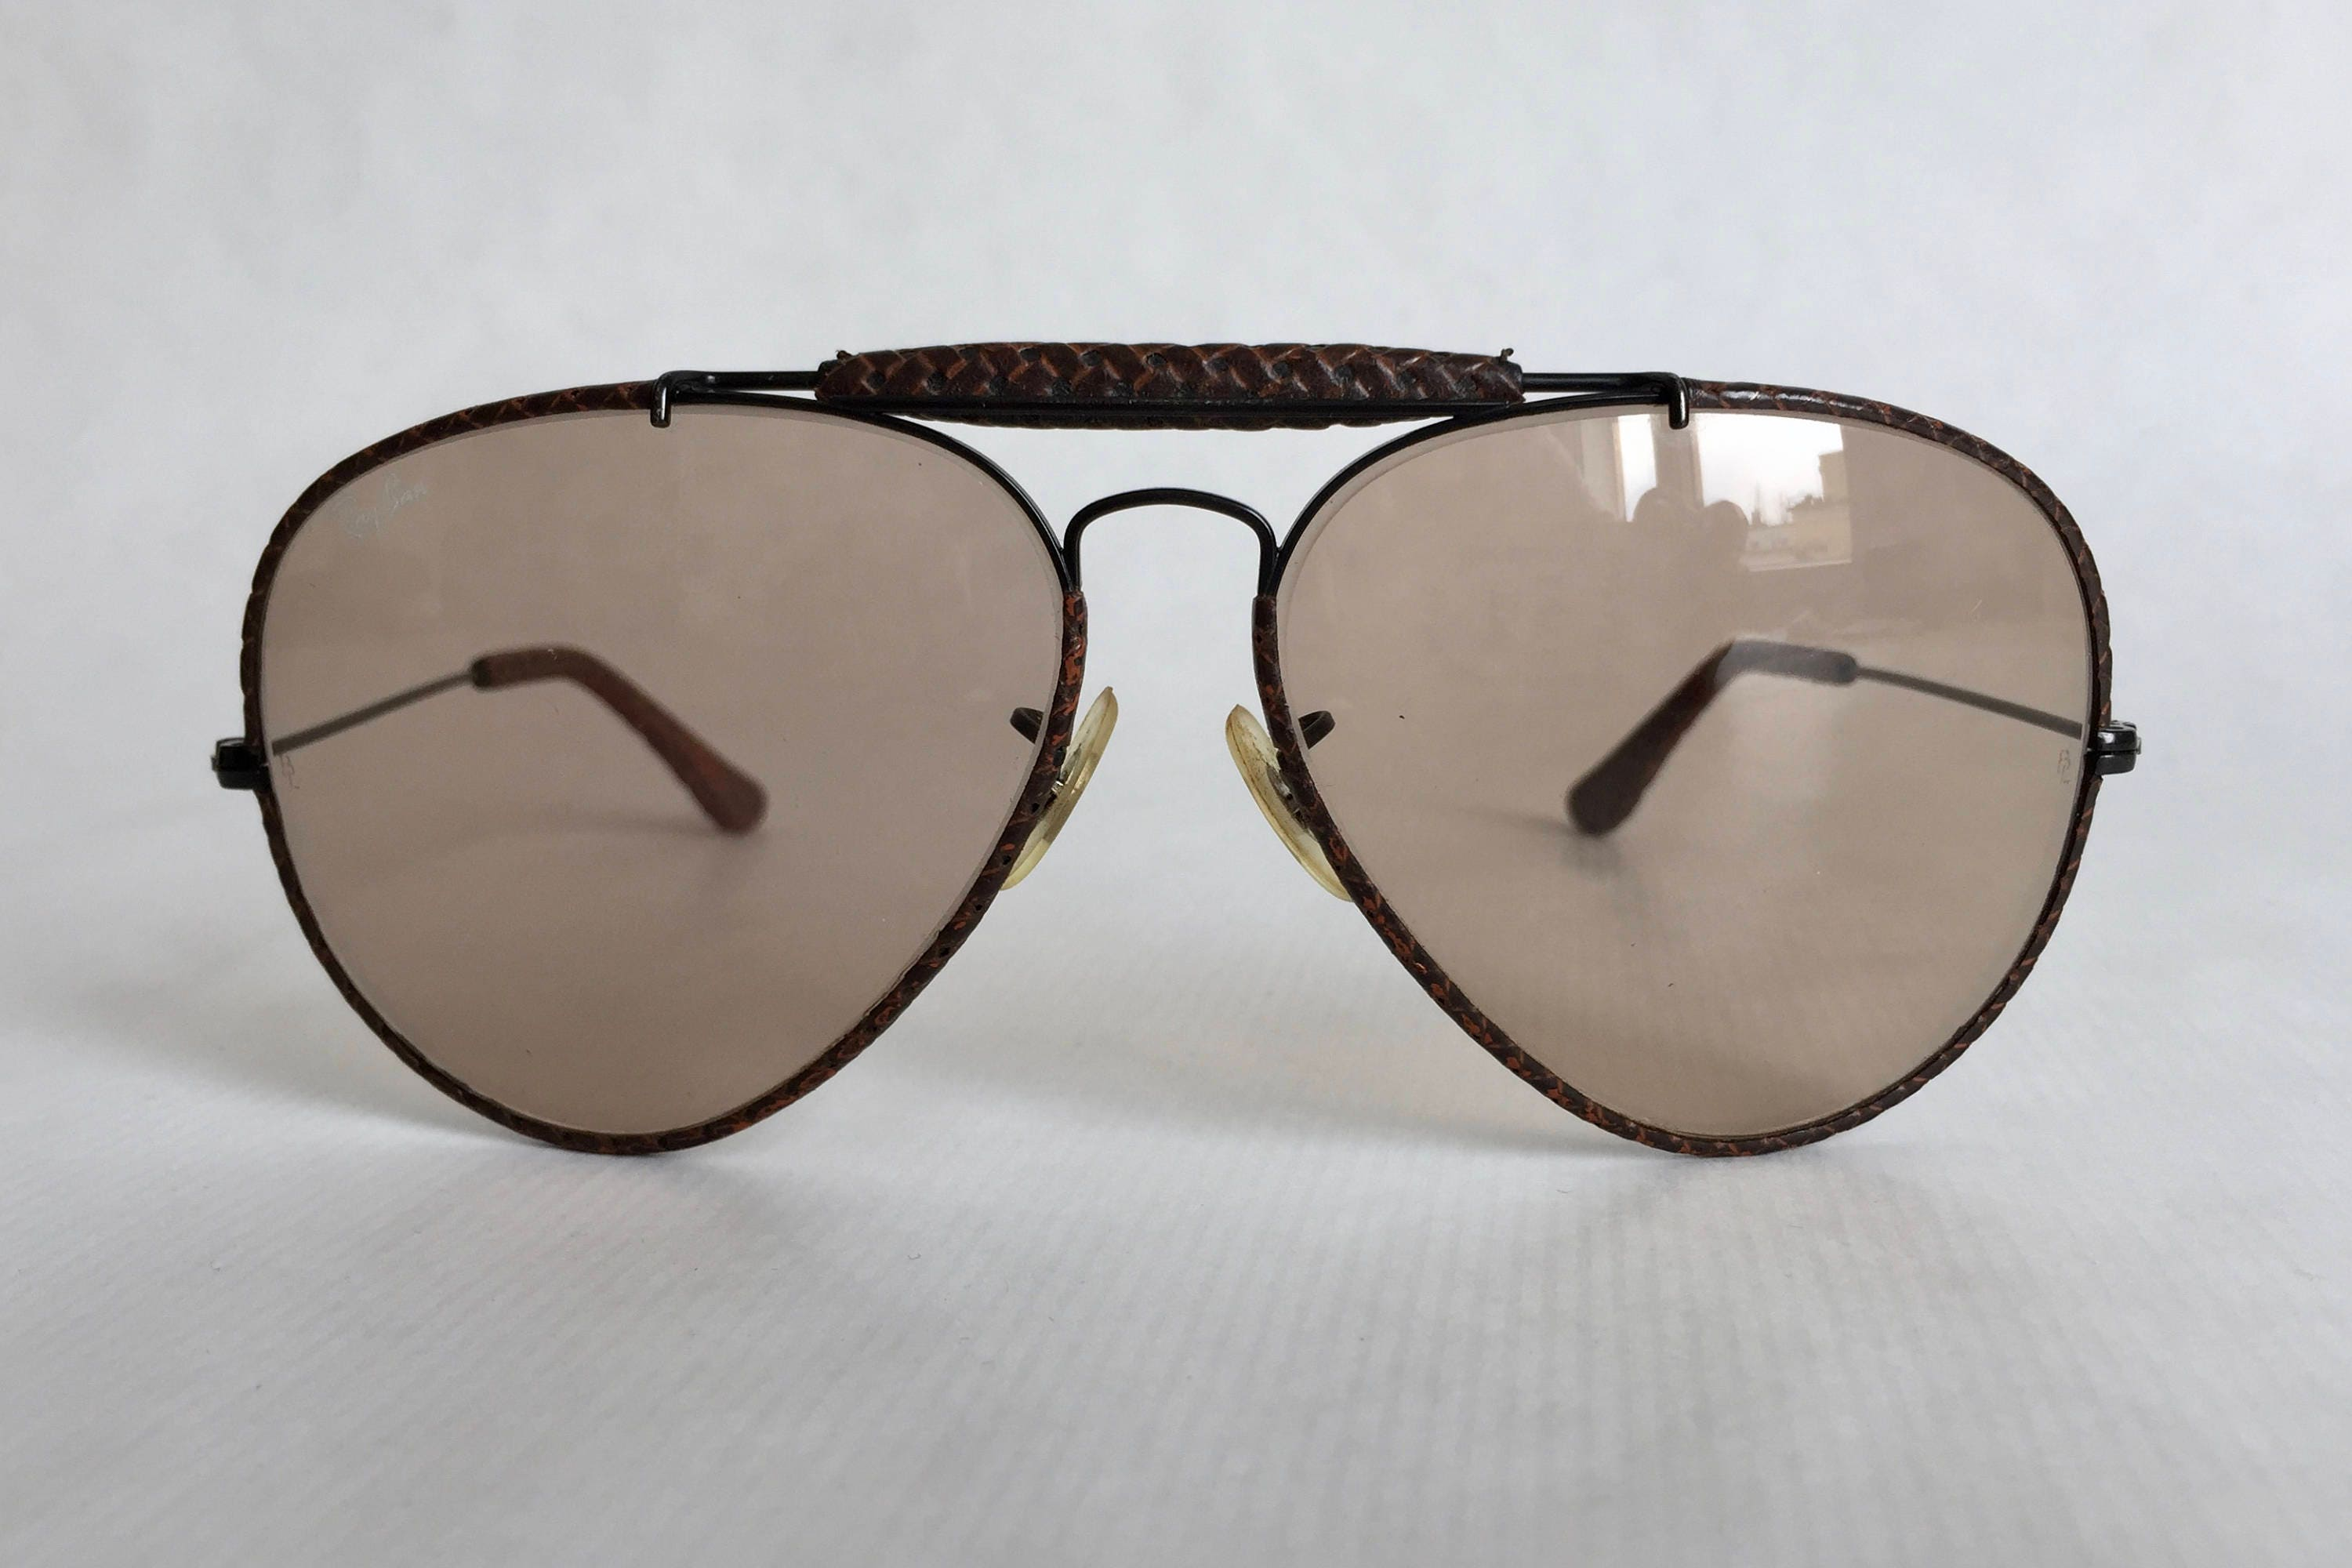 f0e3c9fb52 Ray-Ban Outdoorsman Basket Weave Leathers Ambermatic™ by Bausch   Lomb  Vintage Sunglasses. gallery photo ...